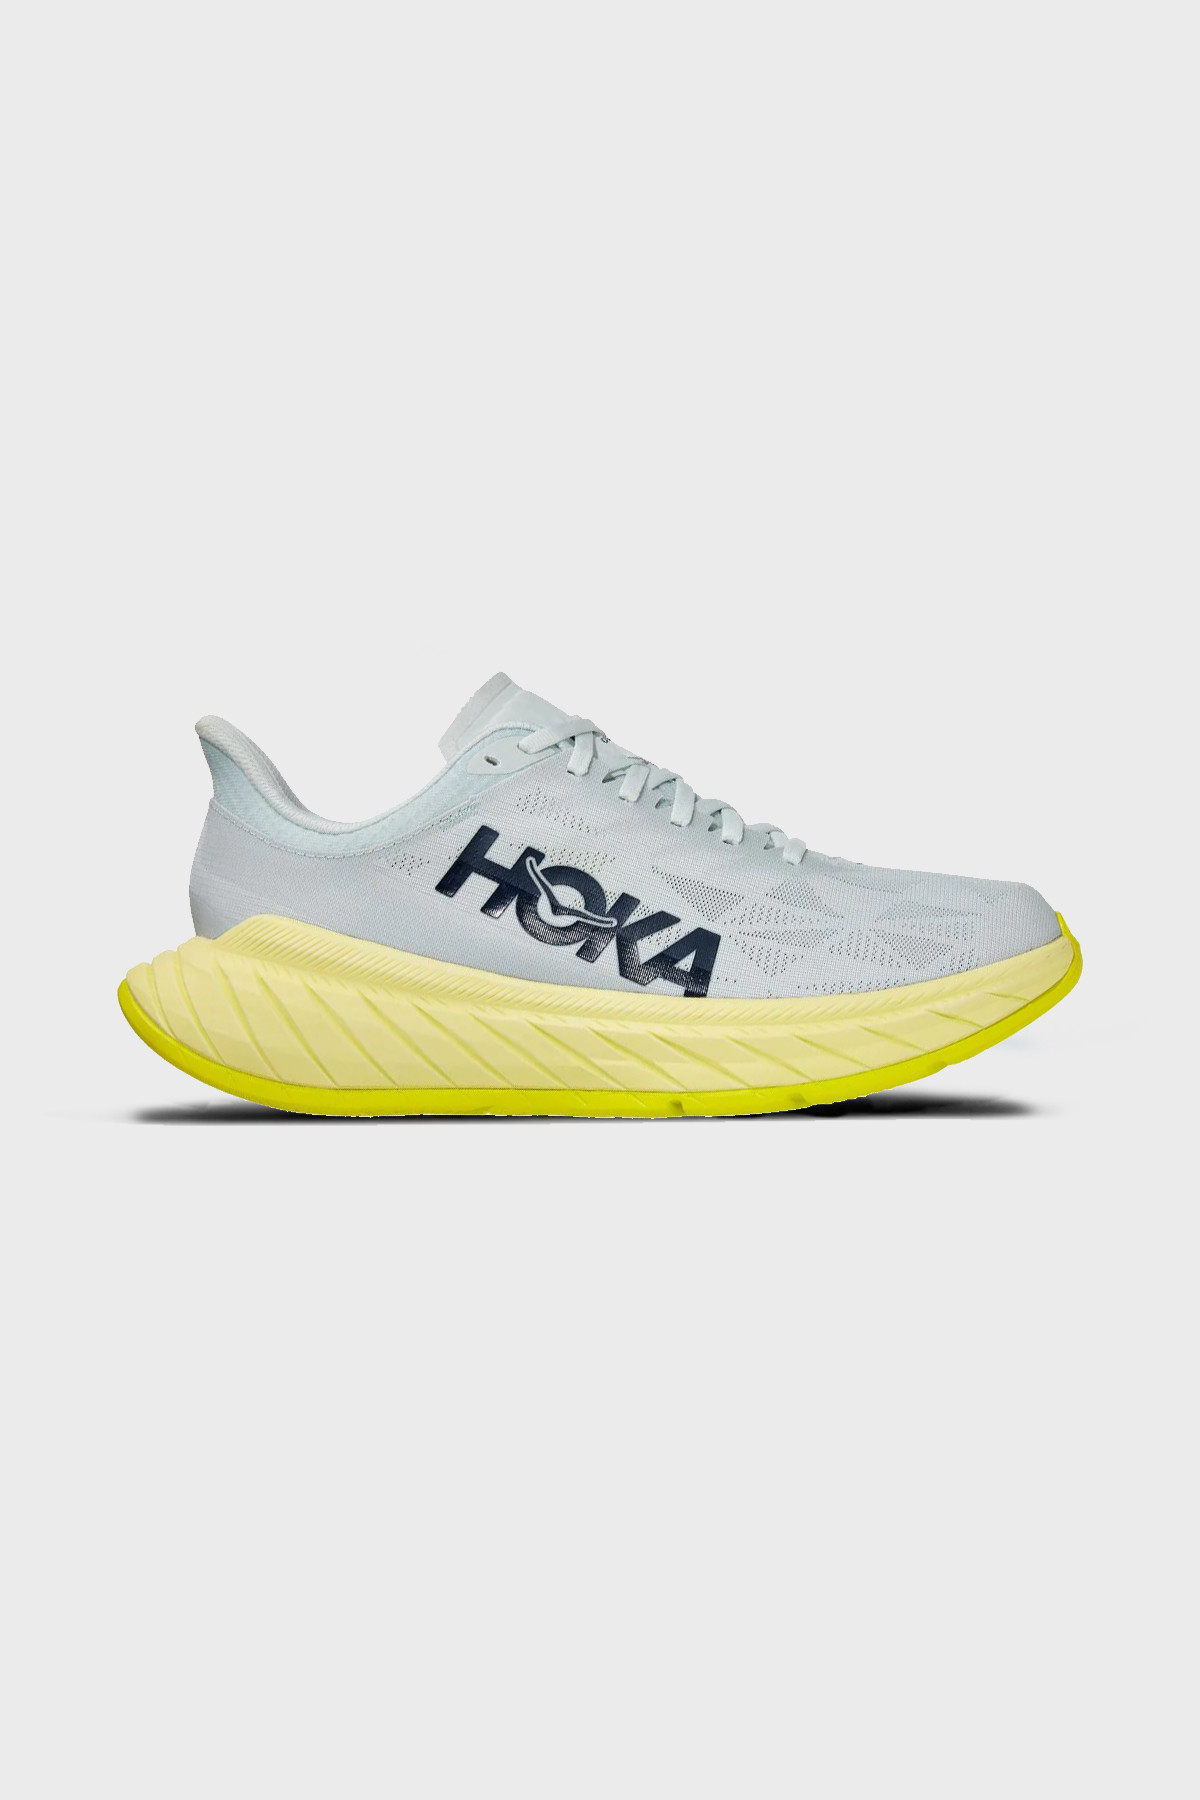 HOKA ONE ONE - CARBON X 2 - BLUE FLOWER LUMINARY GREEN